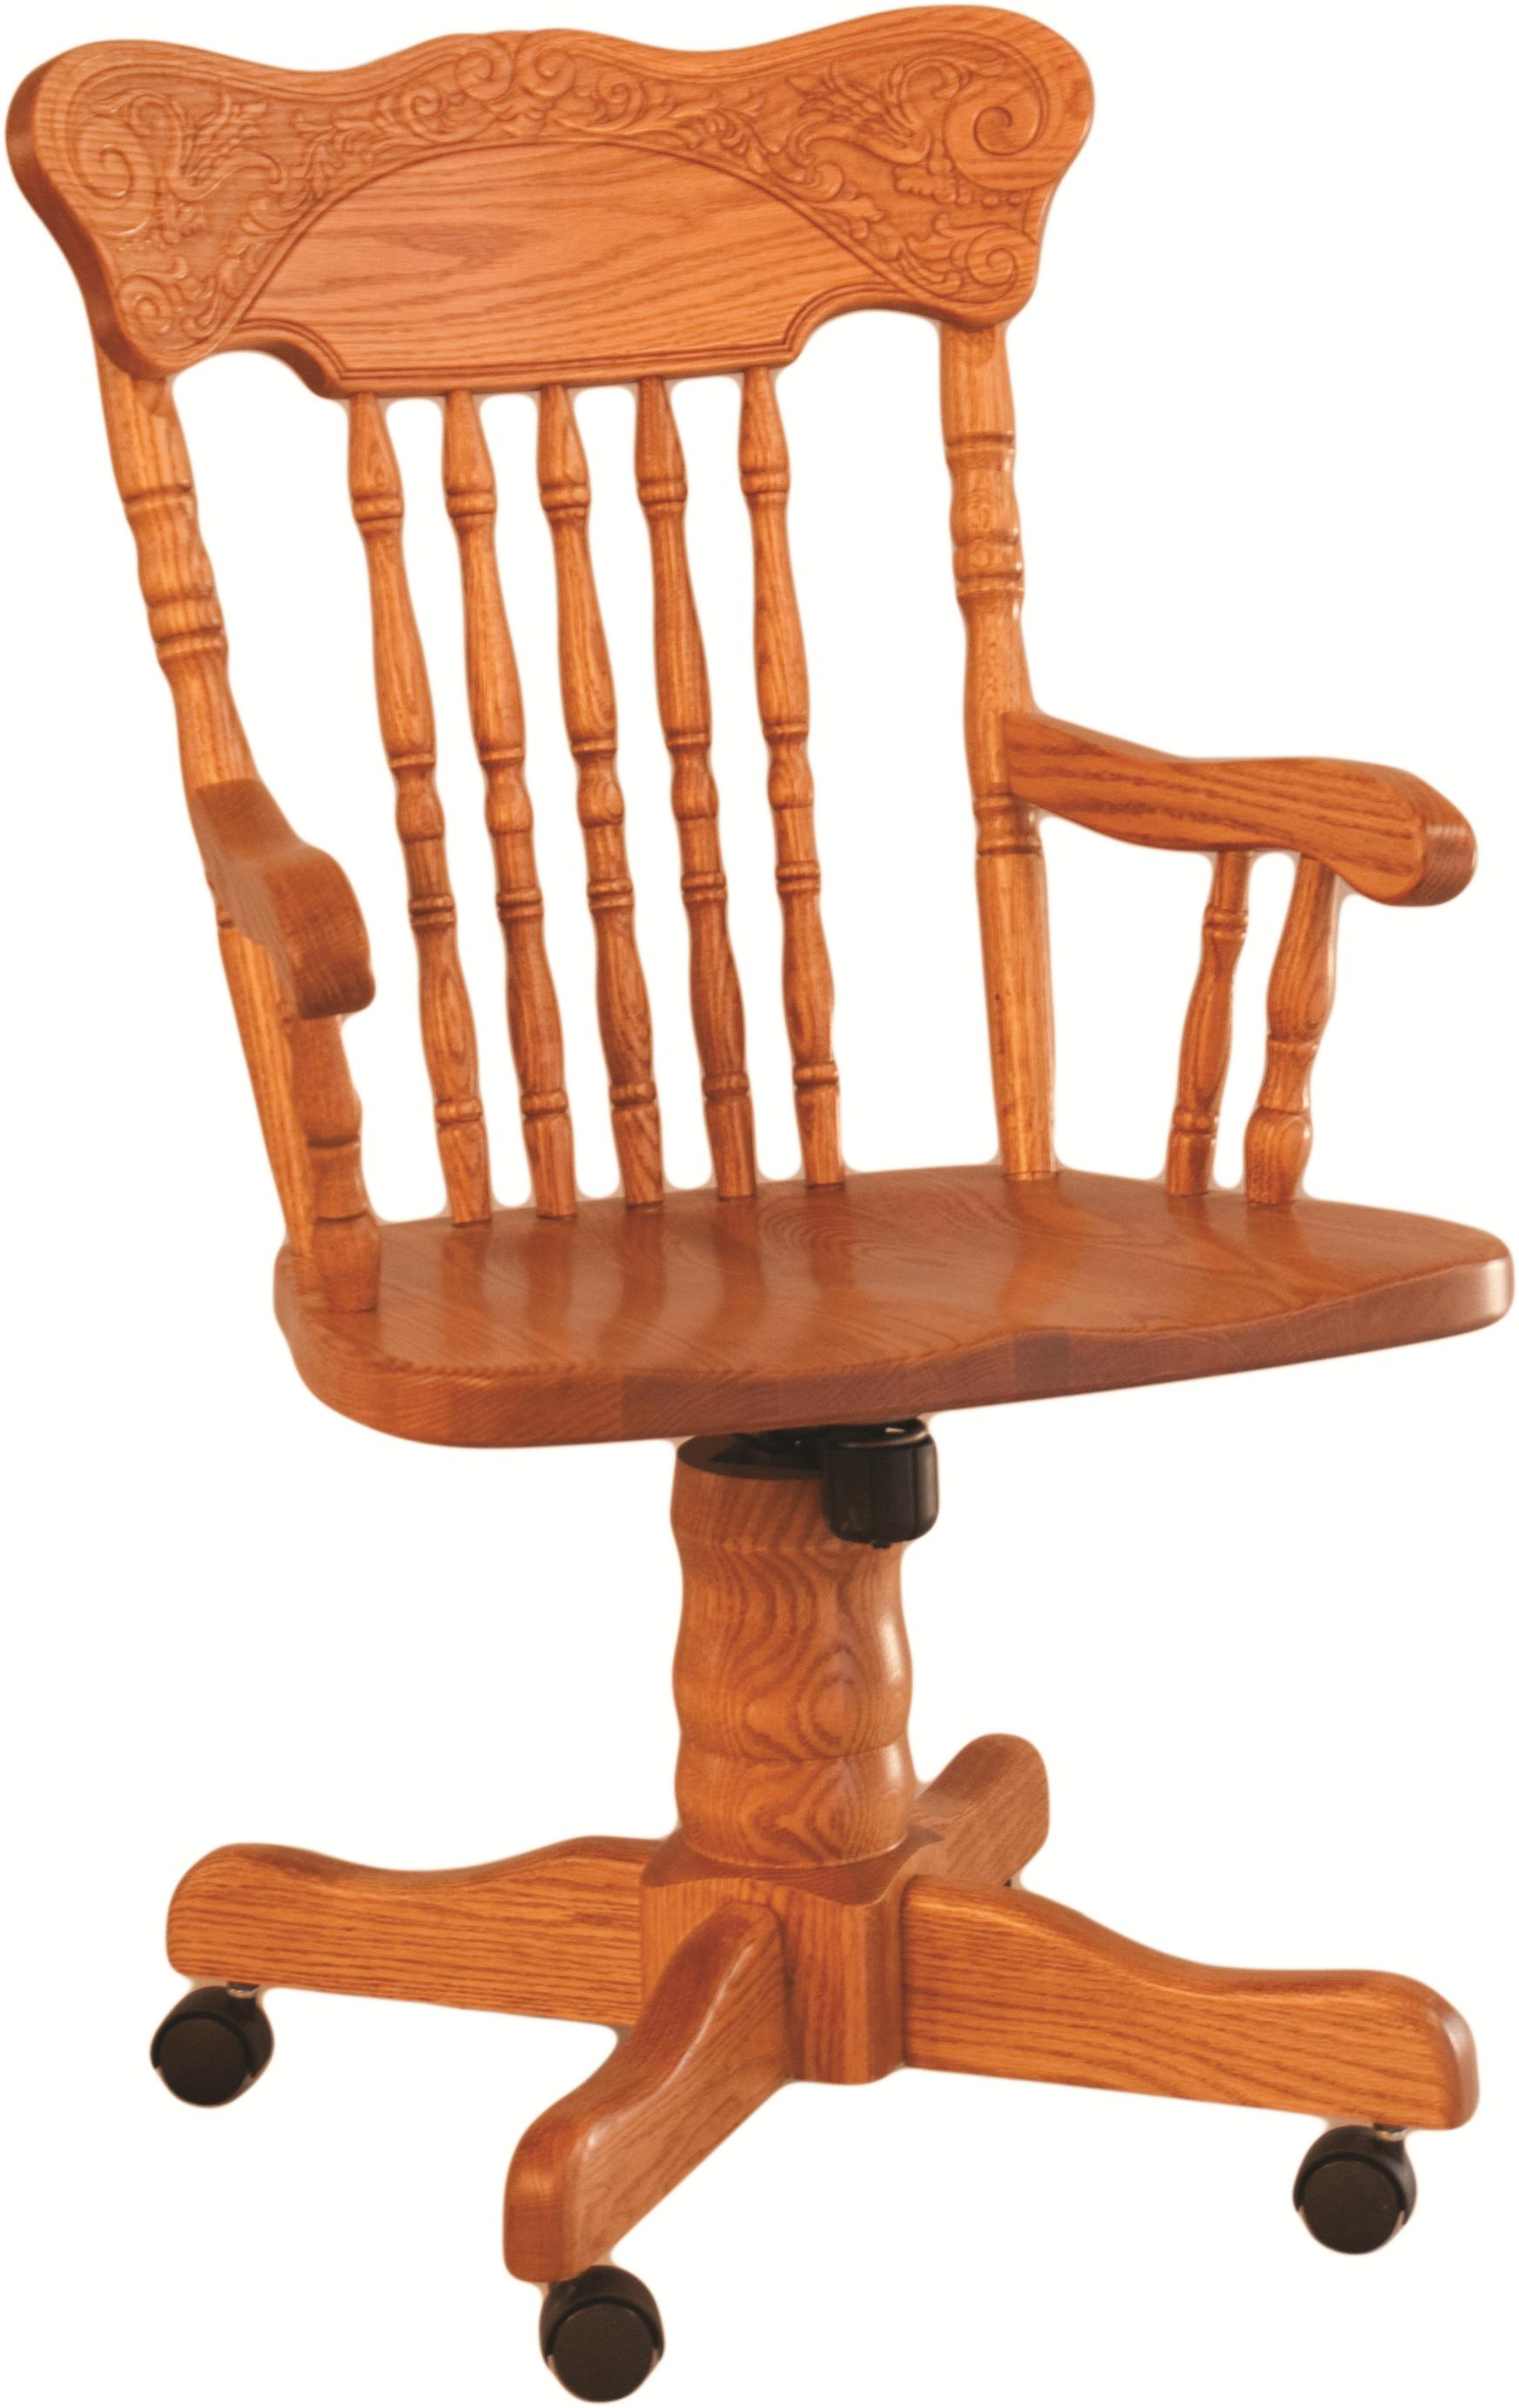 Pressed Back Roller Arm Chair